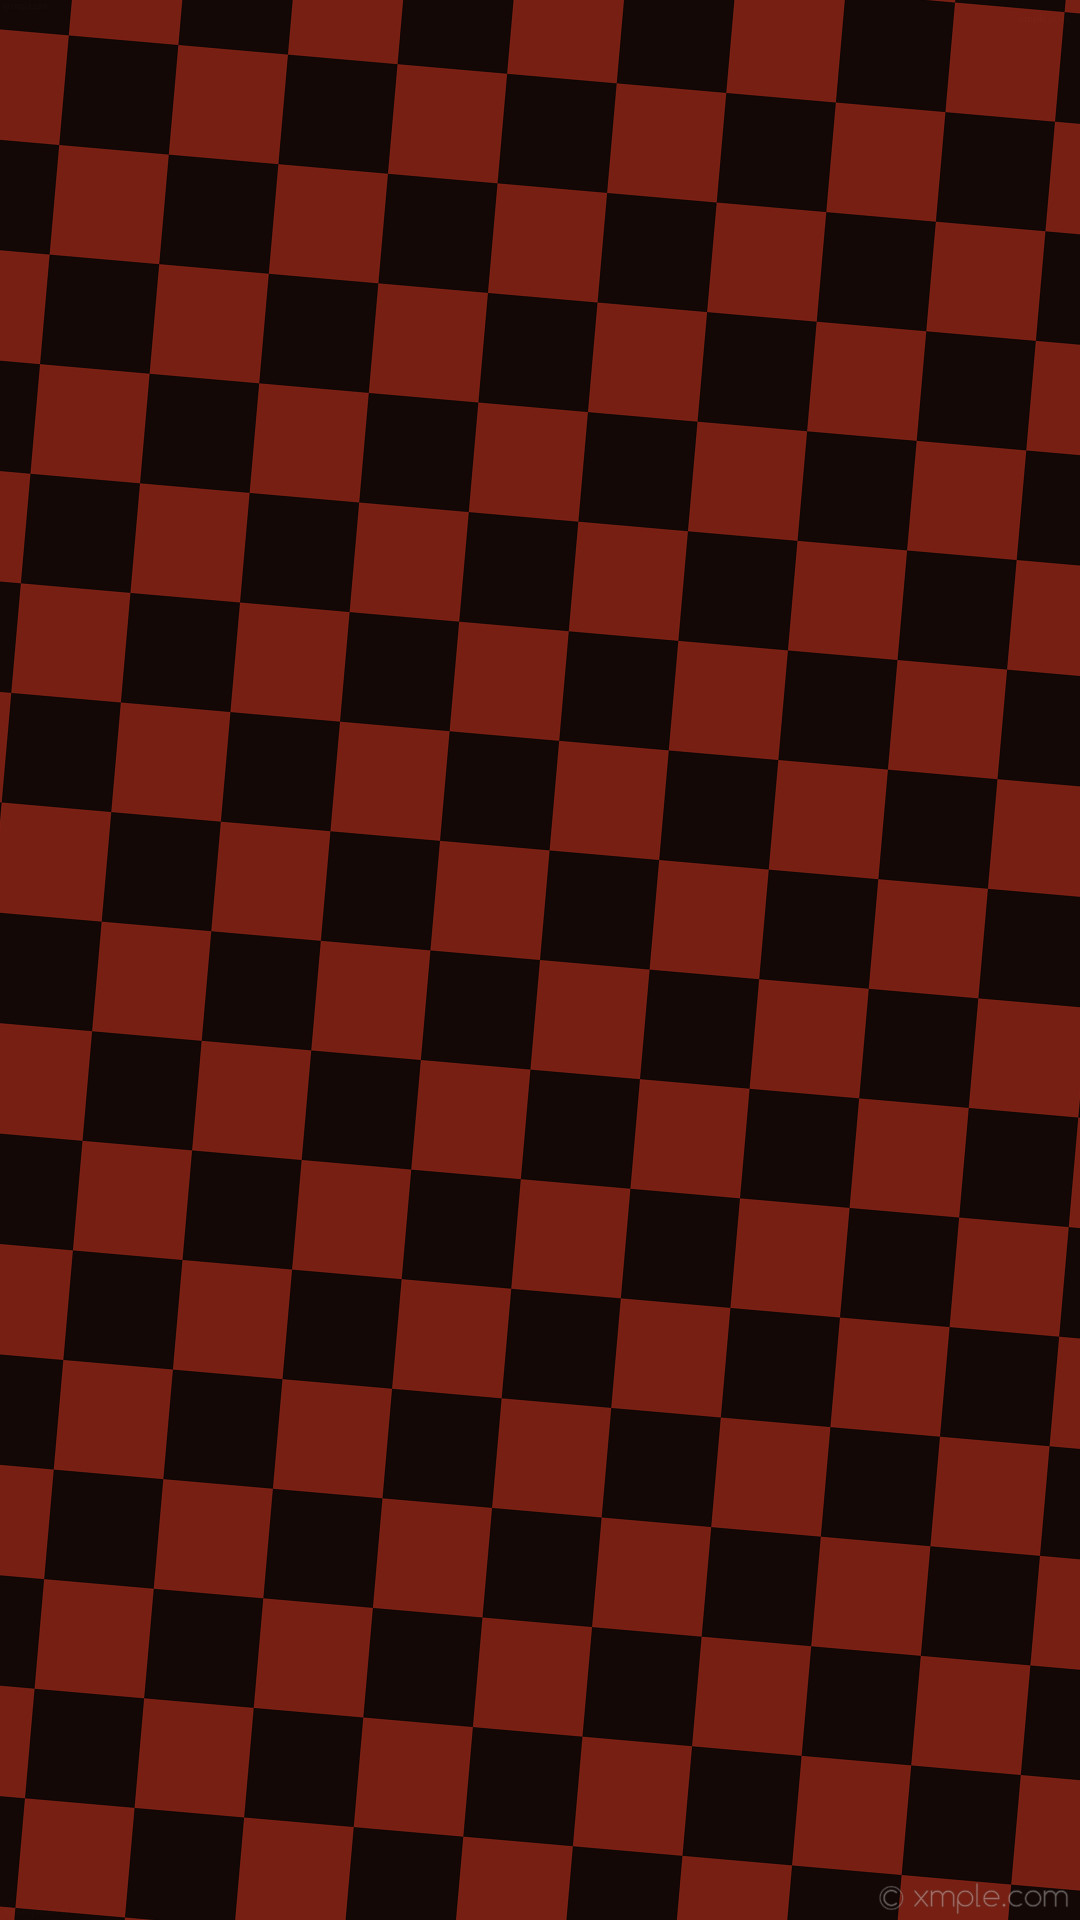 1080x1920 wallpaper squares red checkered dark red #140806 #771f13 diagonal 85° 110px